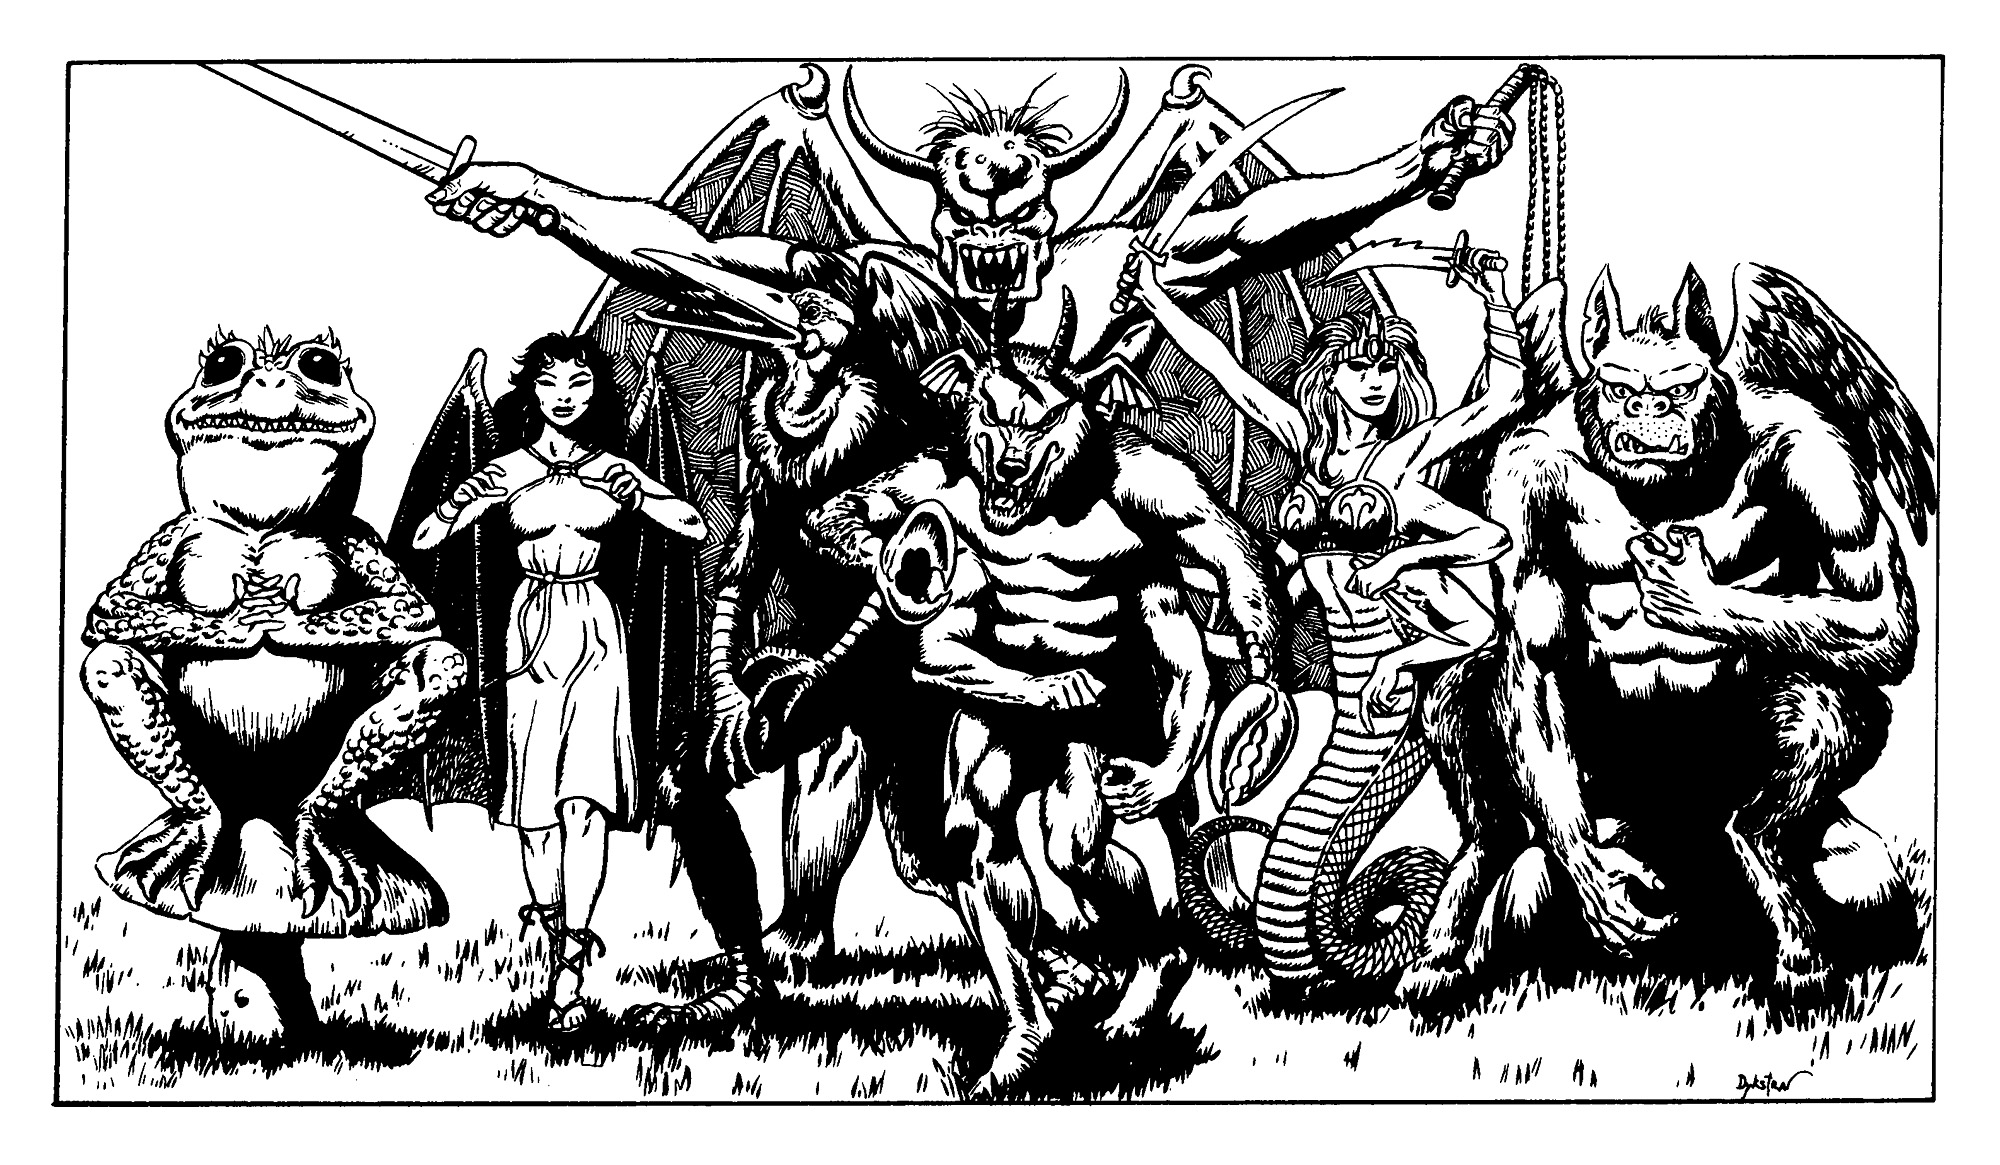 "succubus Demoni ""D&D classic"": Croaking (hezrou), Whispering (succube), Screaming (vrock), Roaring (balor), Howling (glabrezu), Hissing (marilith), Groaning (nalfeshnee) - by Terry Dykstra Wrath of the Immortals (1992-07) © TSR"